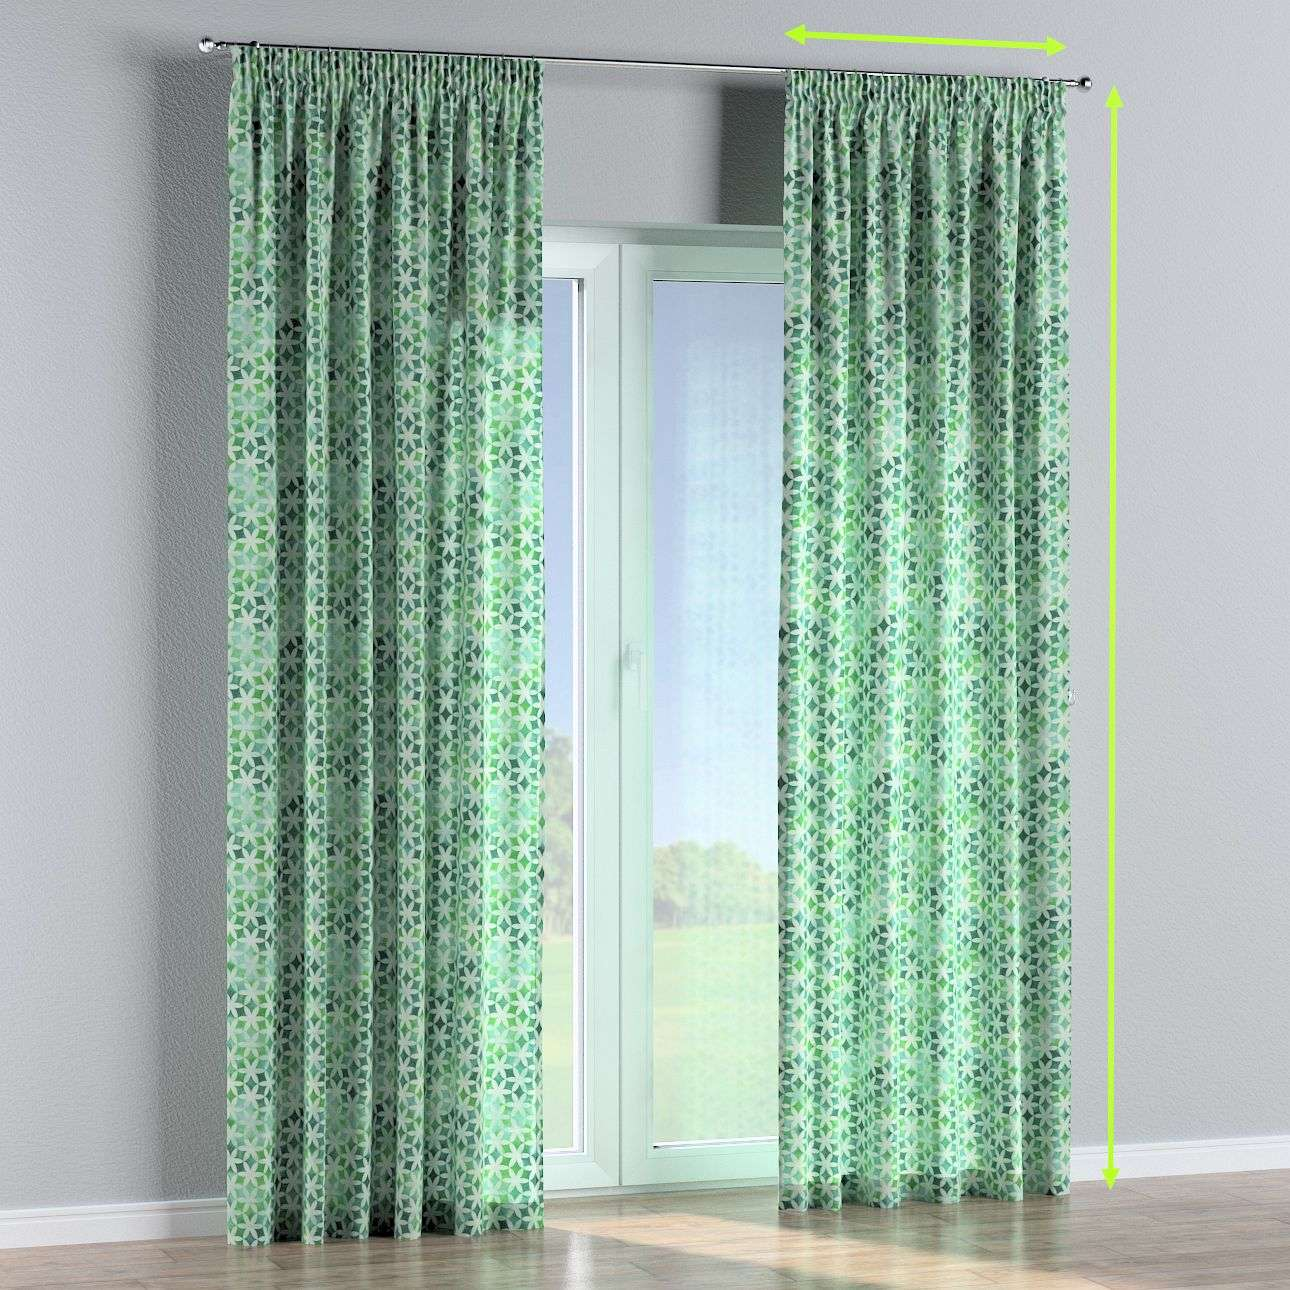 Pencil pleat curtains in collection Tropical Island, fabric: 141-65